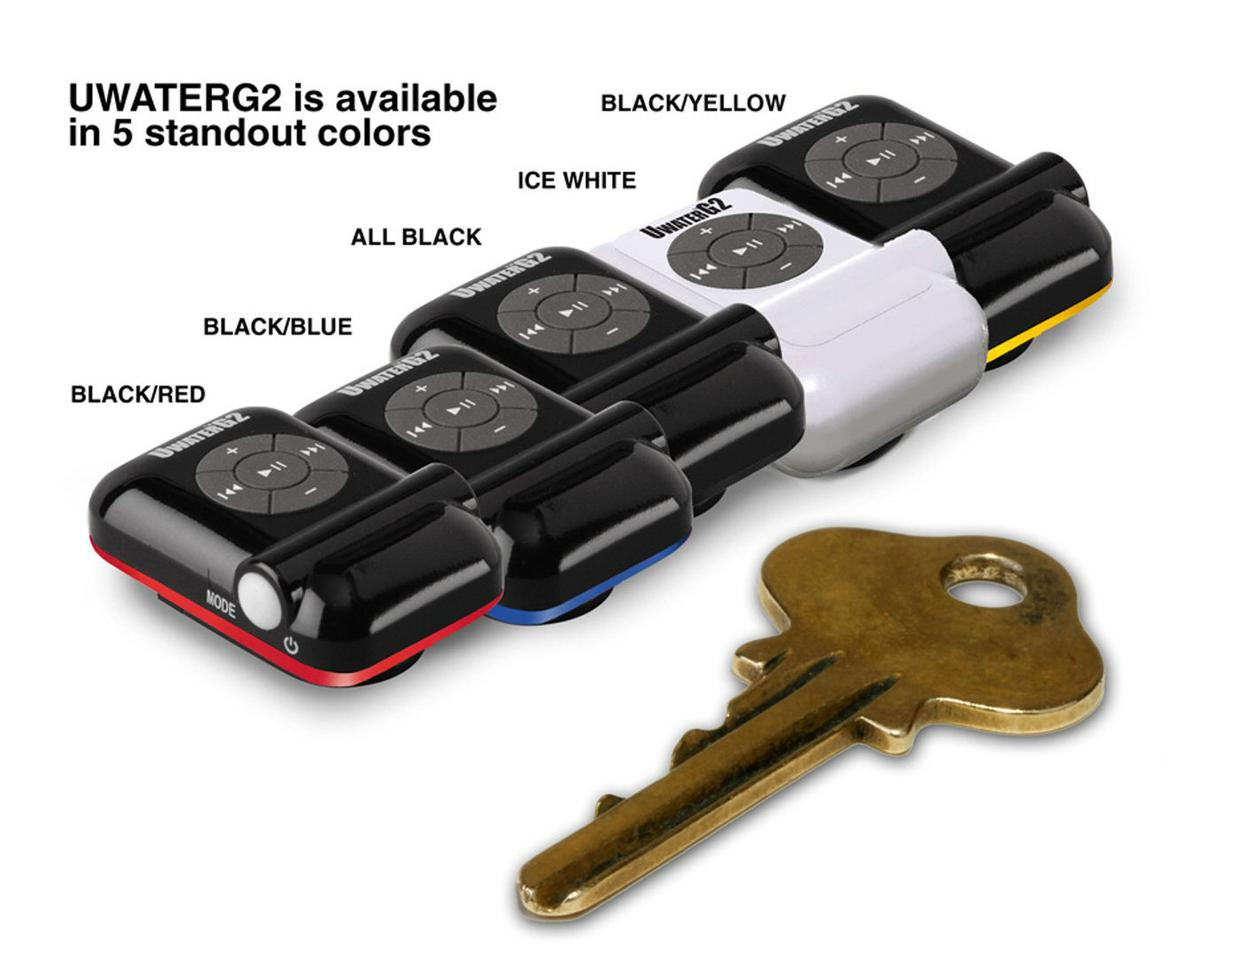 The tiny UWaterG2 waterproof MP3 player is available in five color combinations